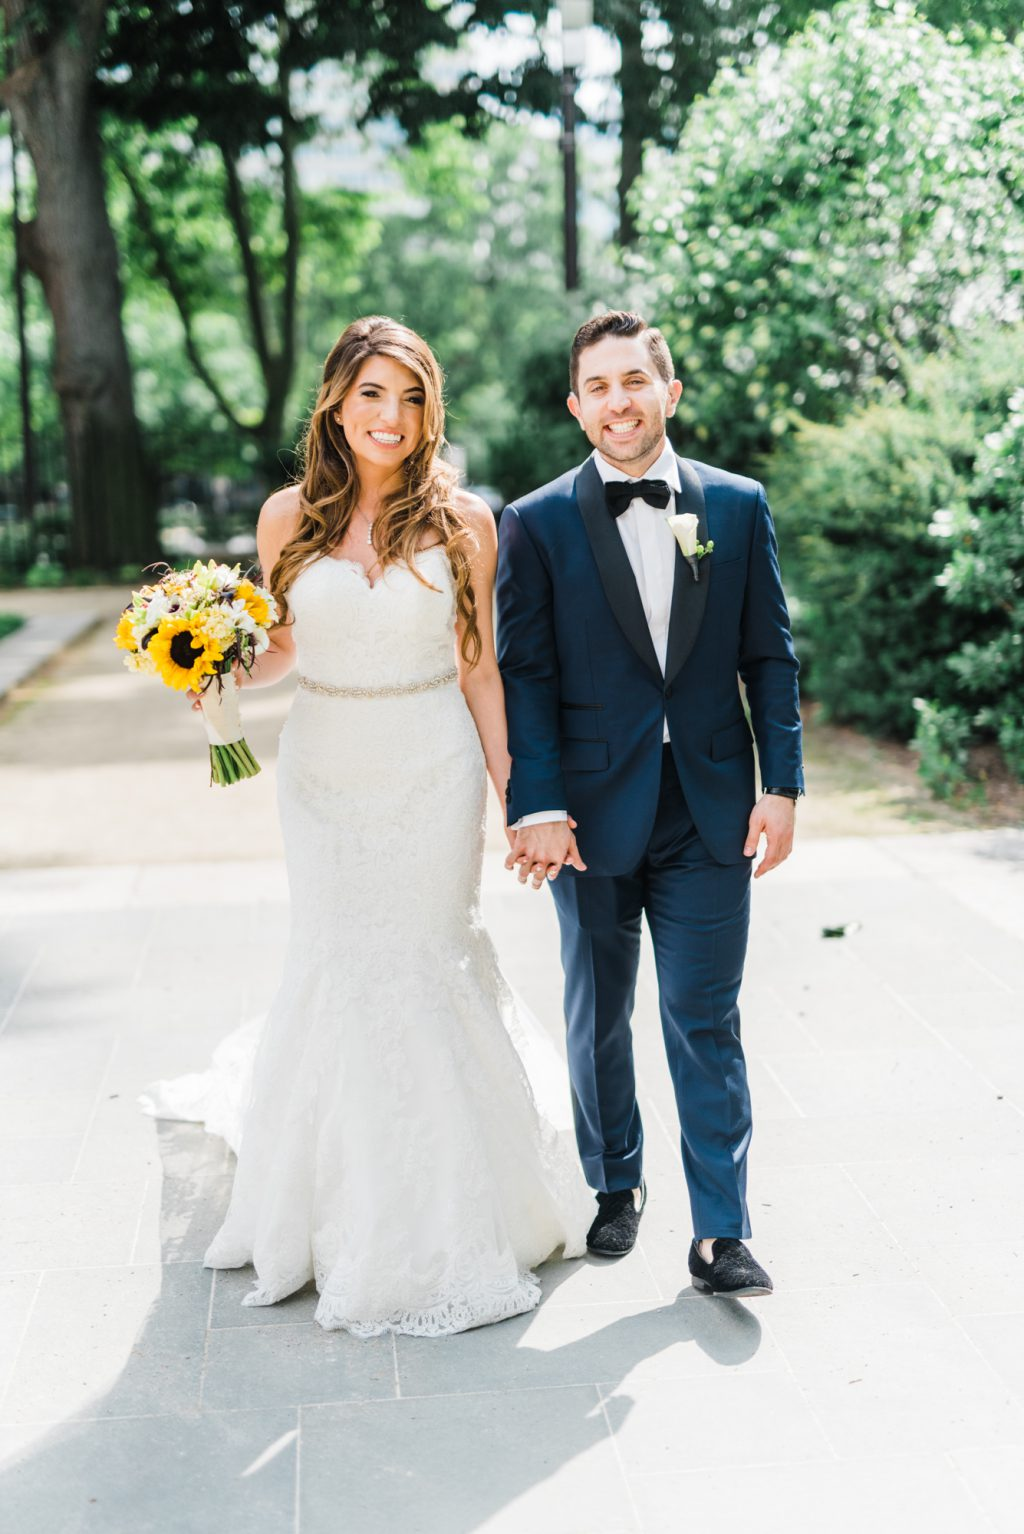 haleyrichterphoto-front-and-palmer-spring-wedding-rodin-museum-loews-hotel-philadelphia-086